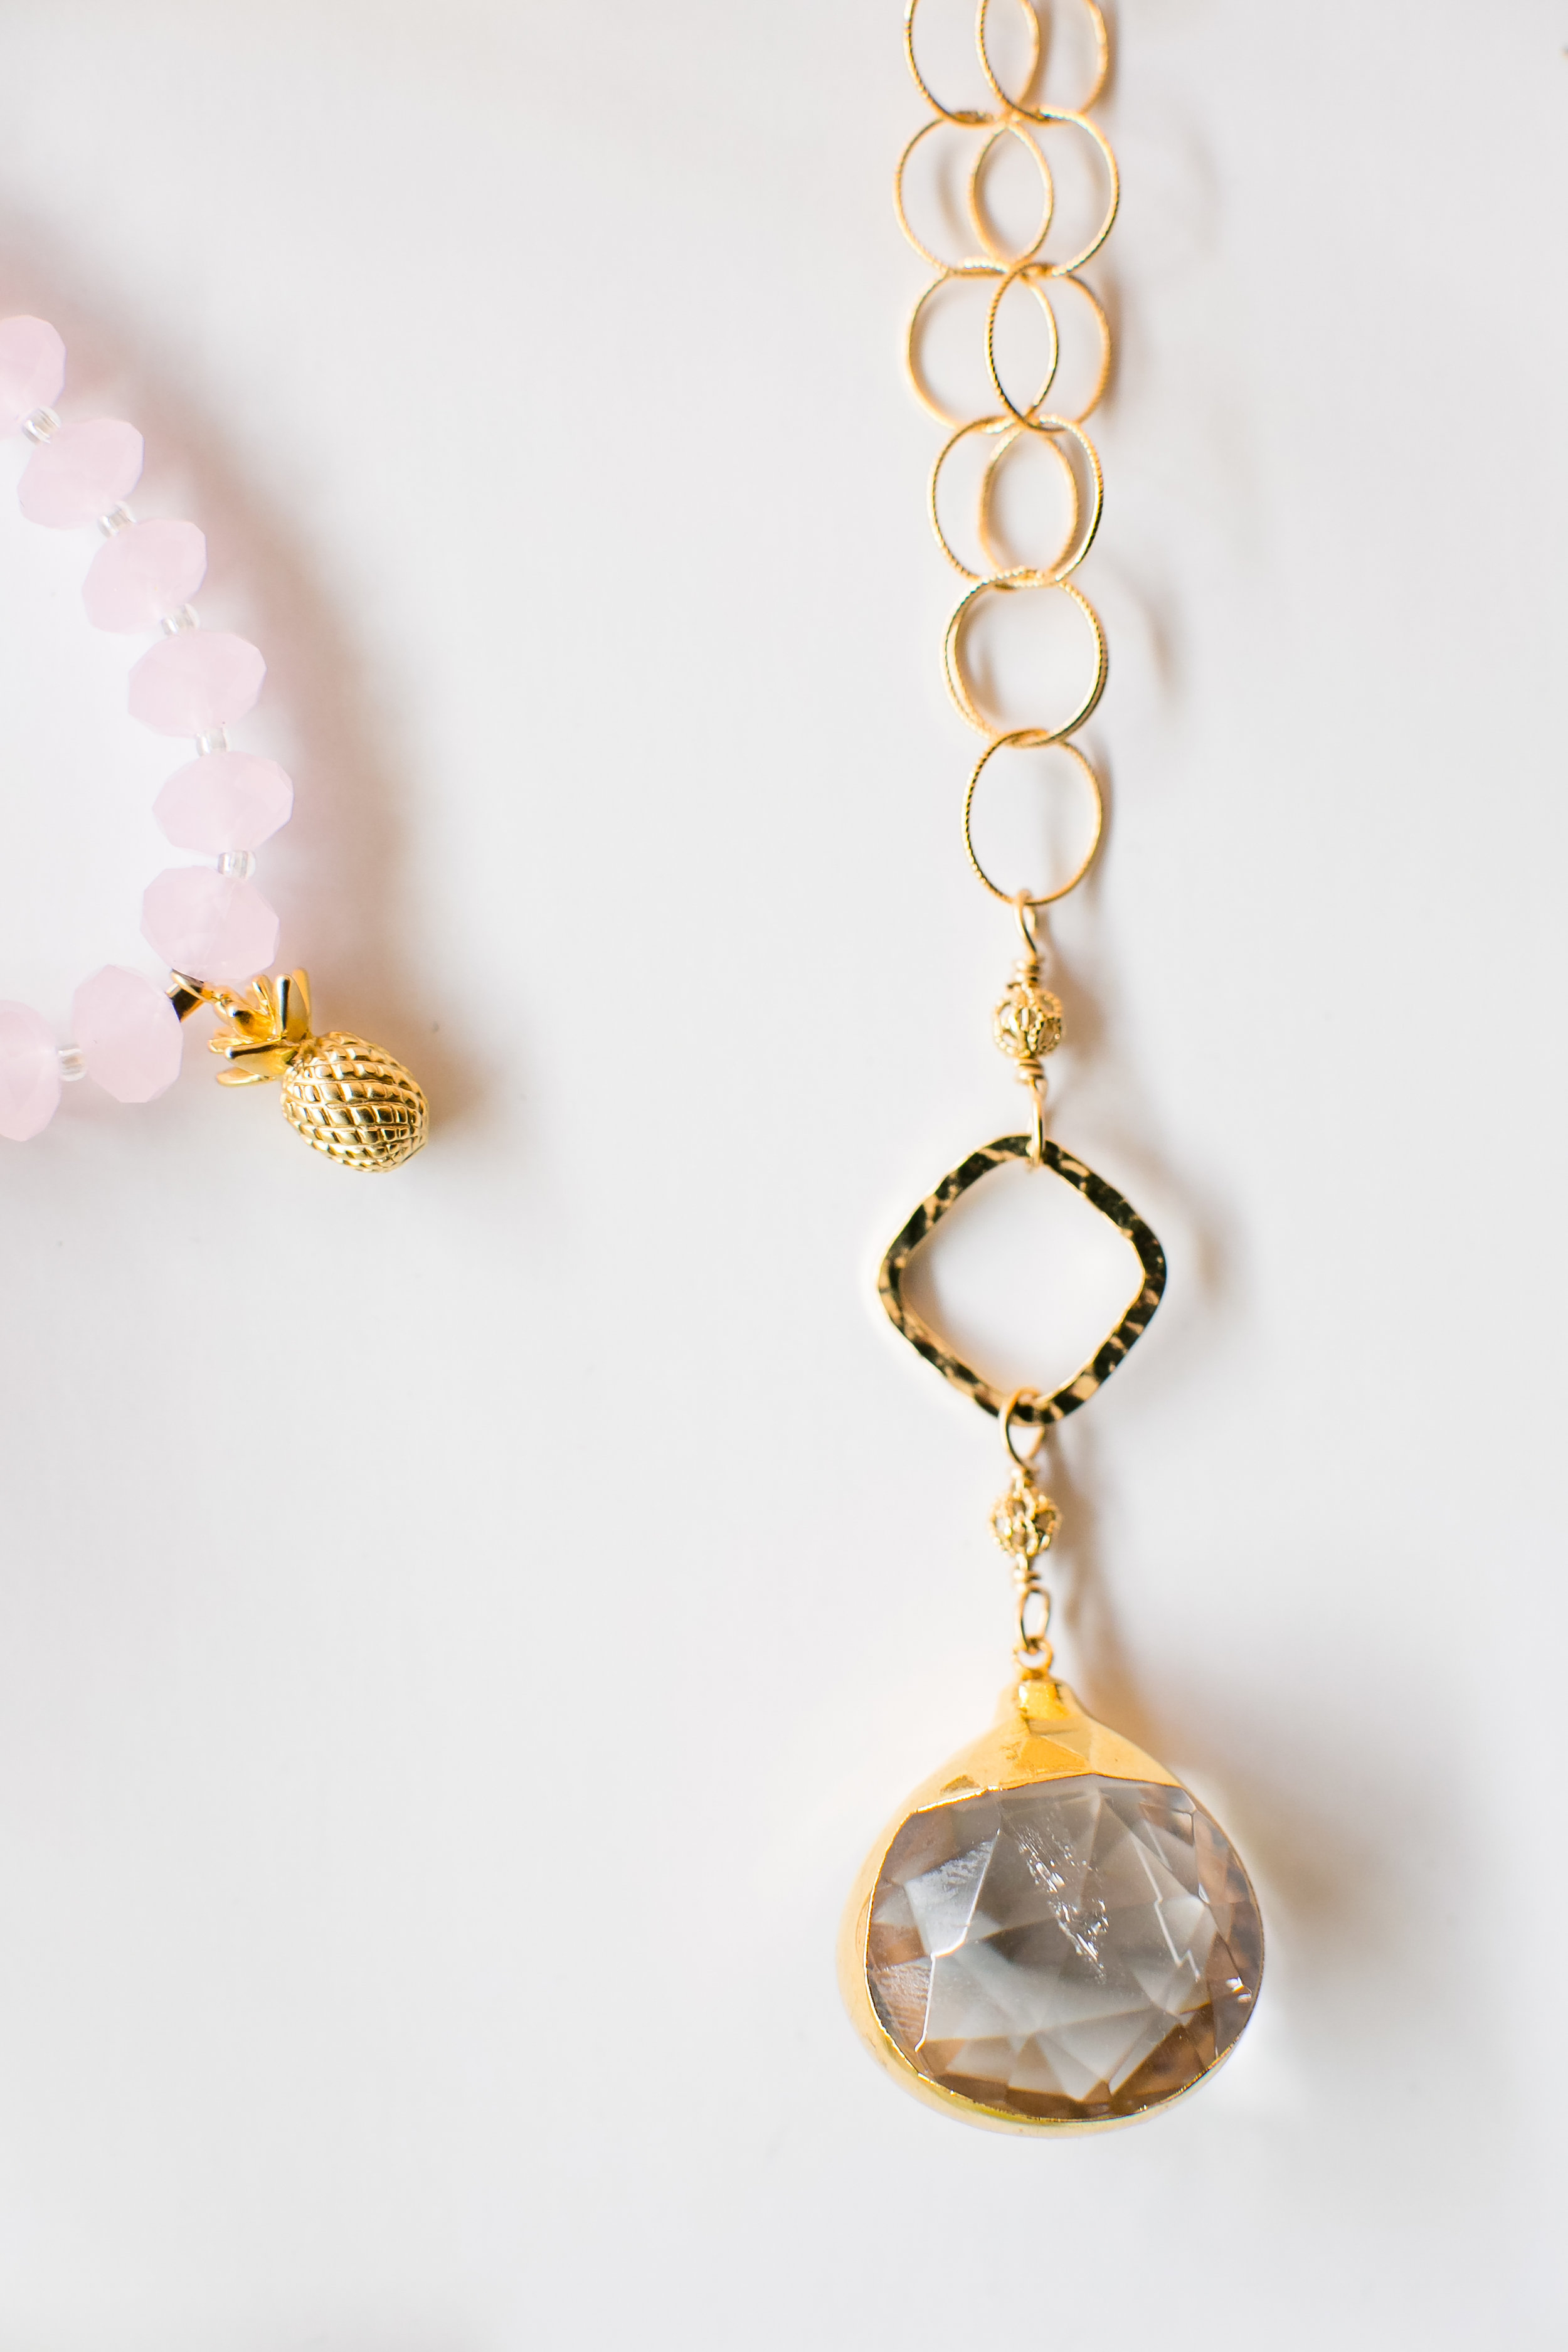 Goldfine Jewelry   Wedding Jewelry from Minneapolis   Sixpence Events & Planning Blog